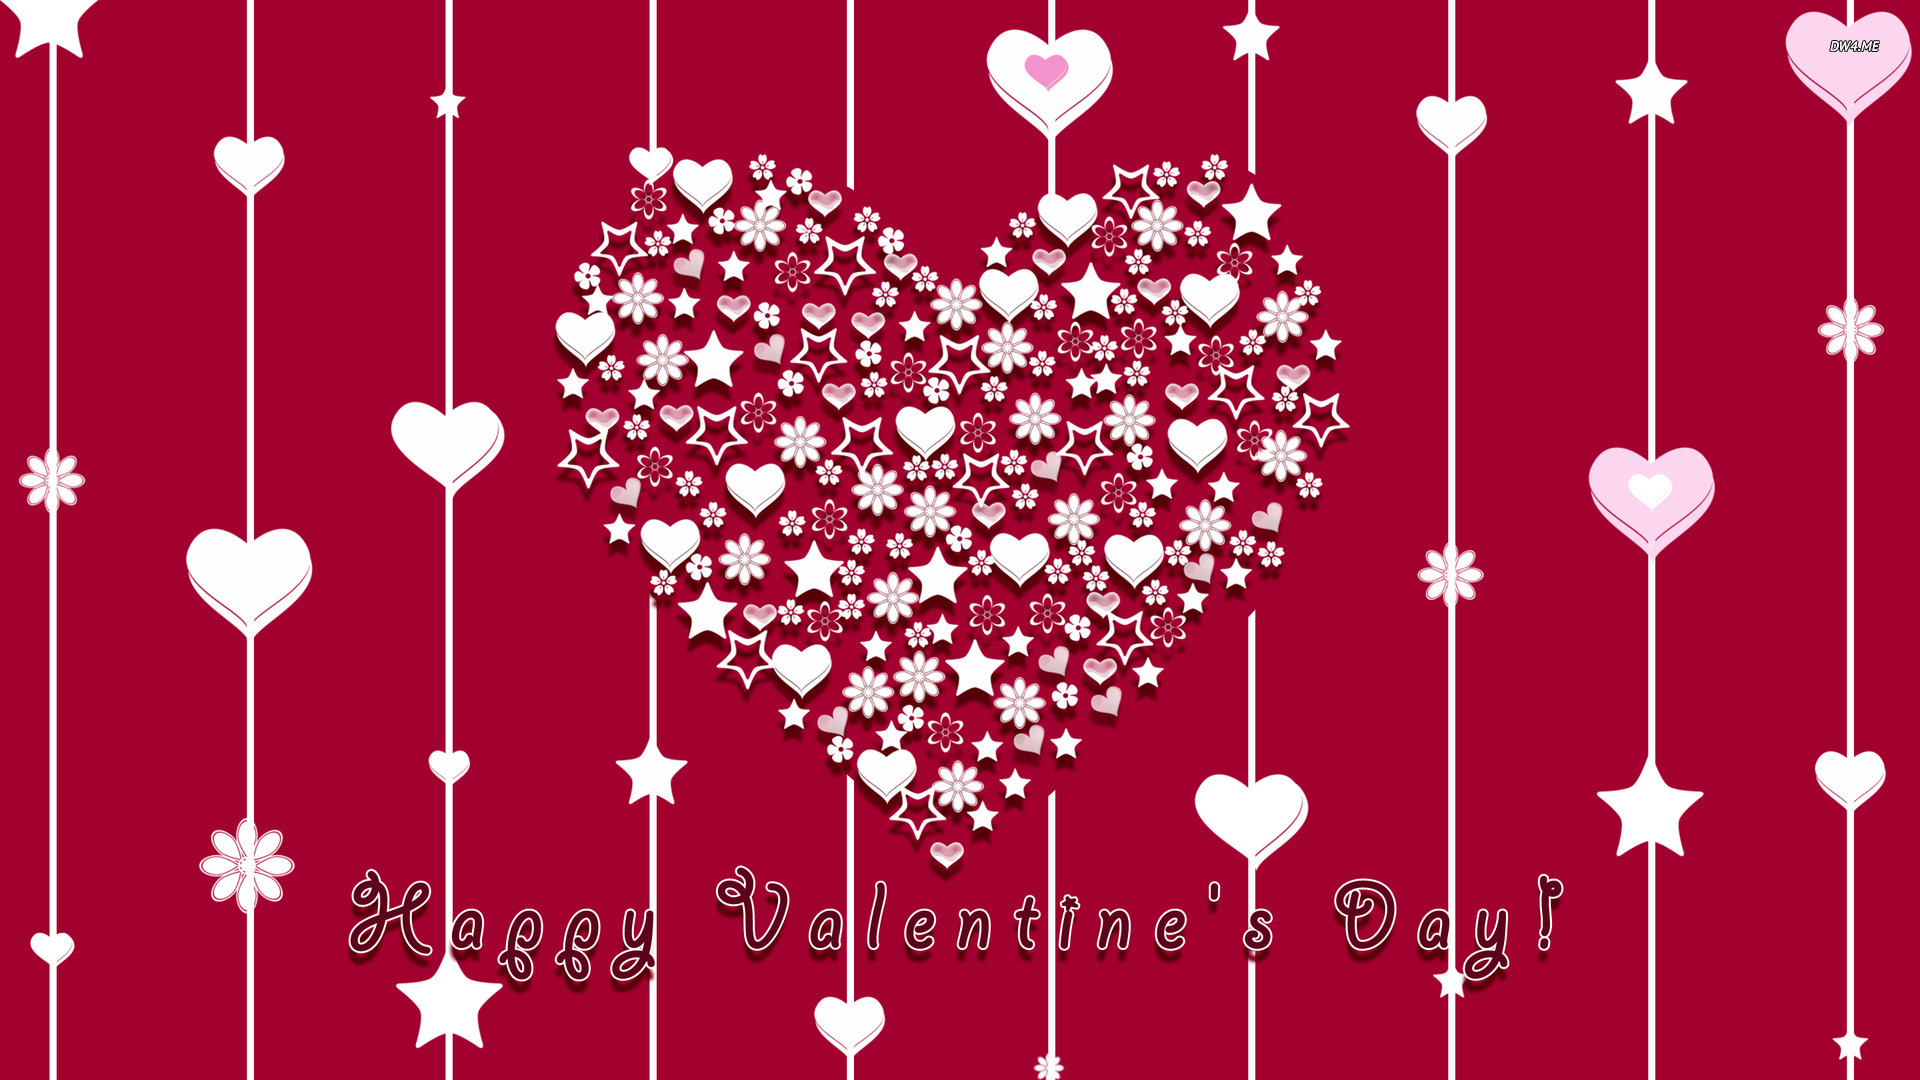 Happy Valentines Day HD Wallpapers   Wallpaper High Definition High 1920x1080